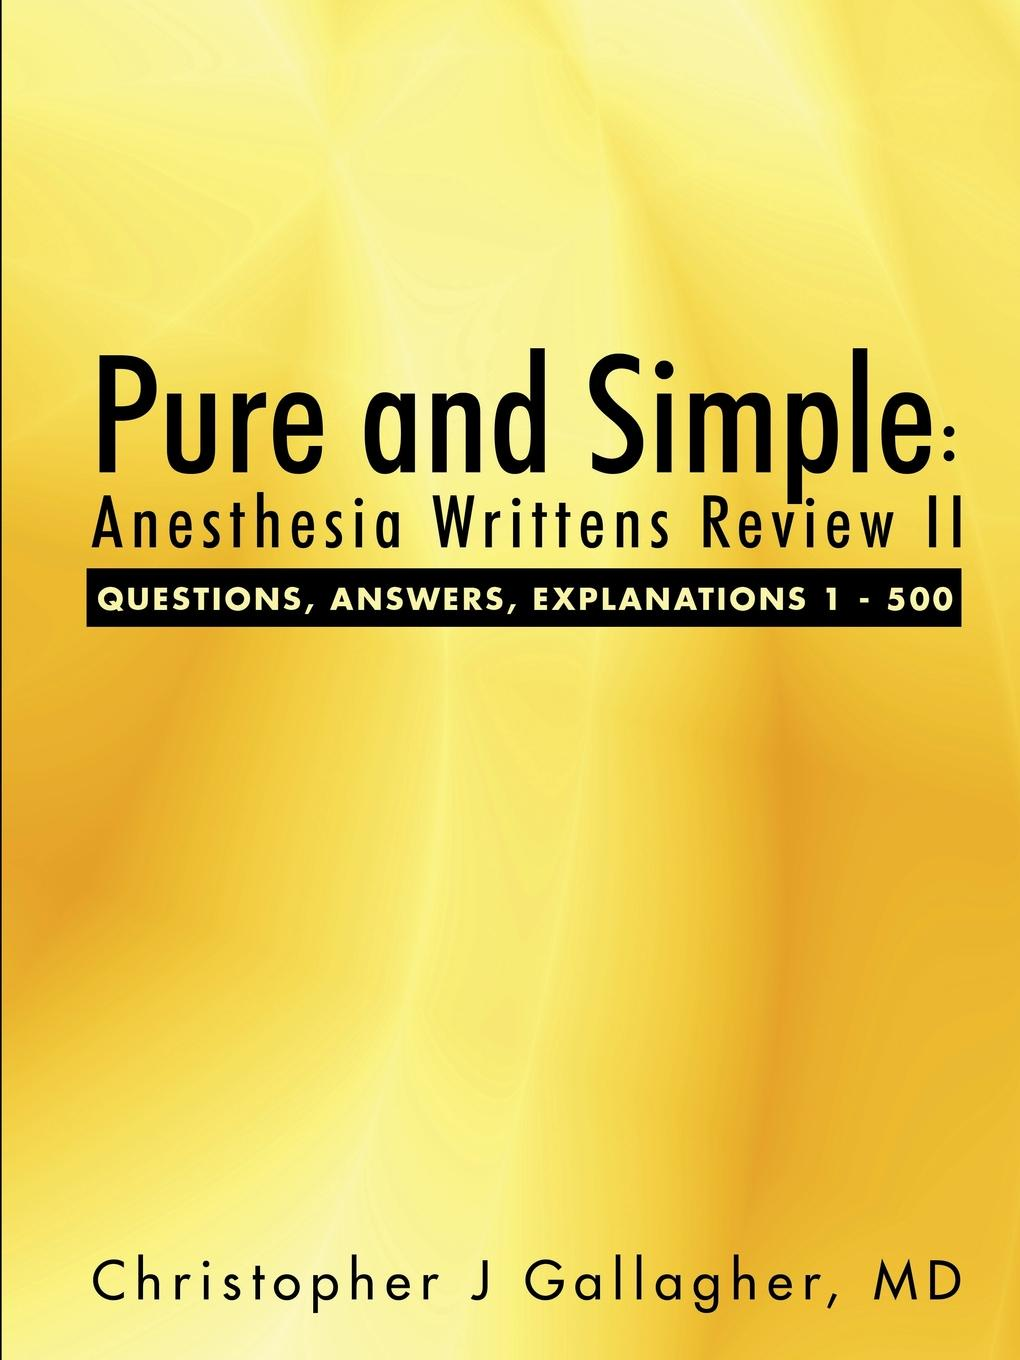 MD Christopher J Gallagher Pure and Simple. Anesthesia Writtens Review II Questions, Answers, Explanations 1 - 500 plumbing questions and answers pdf